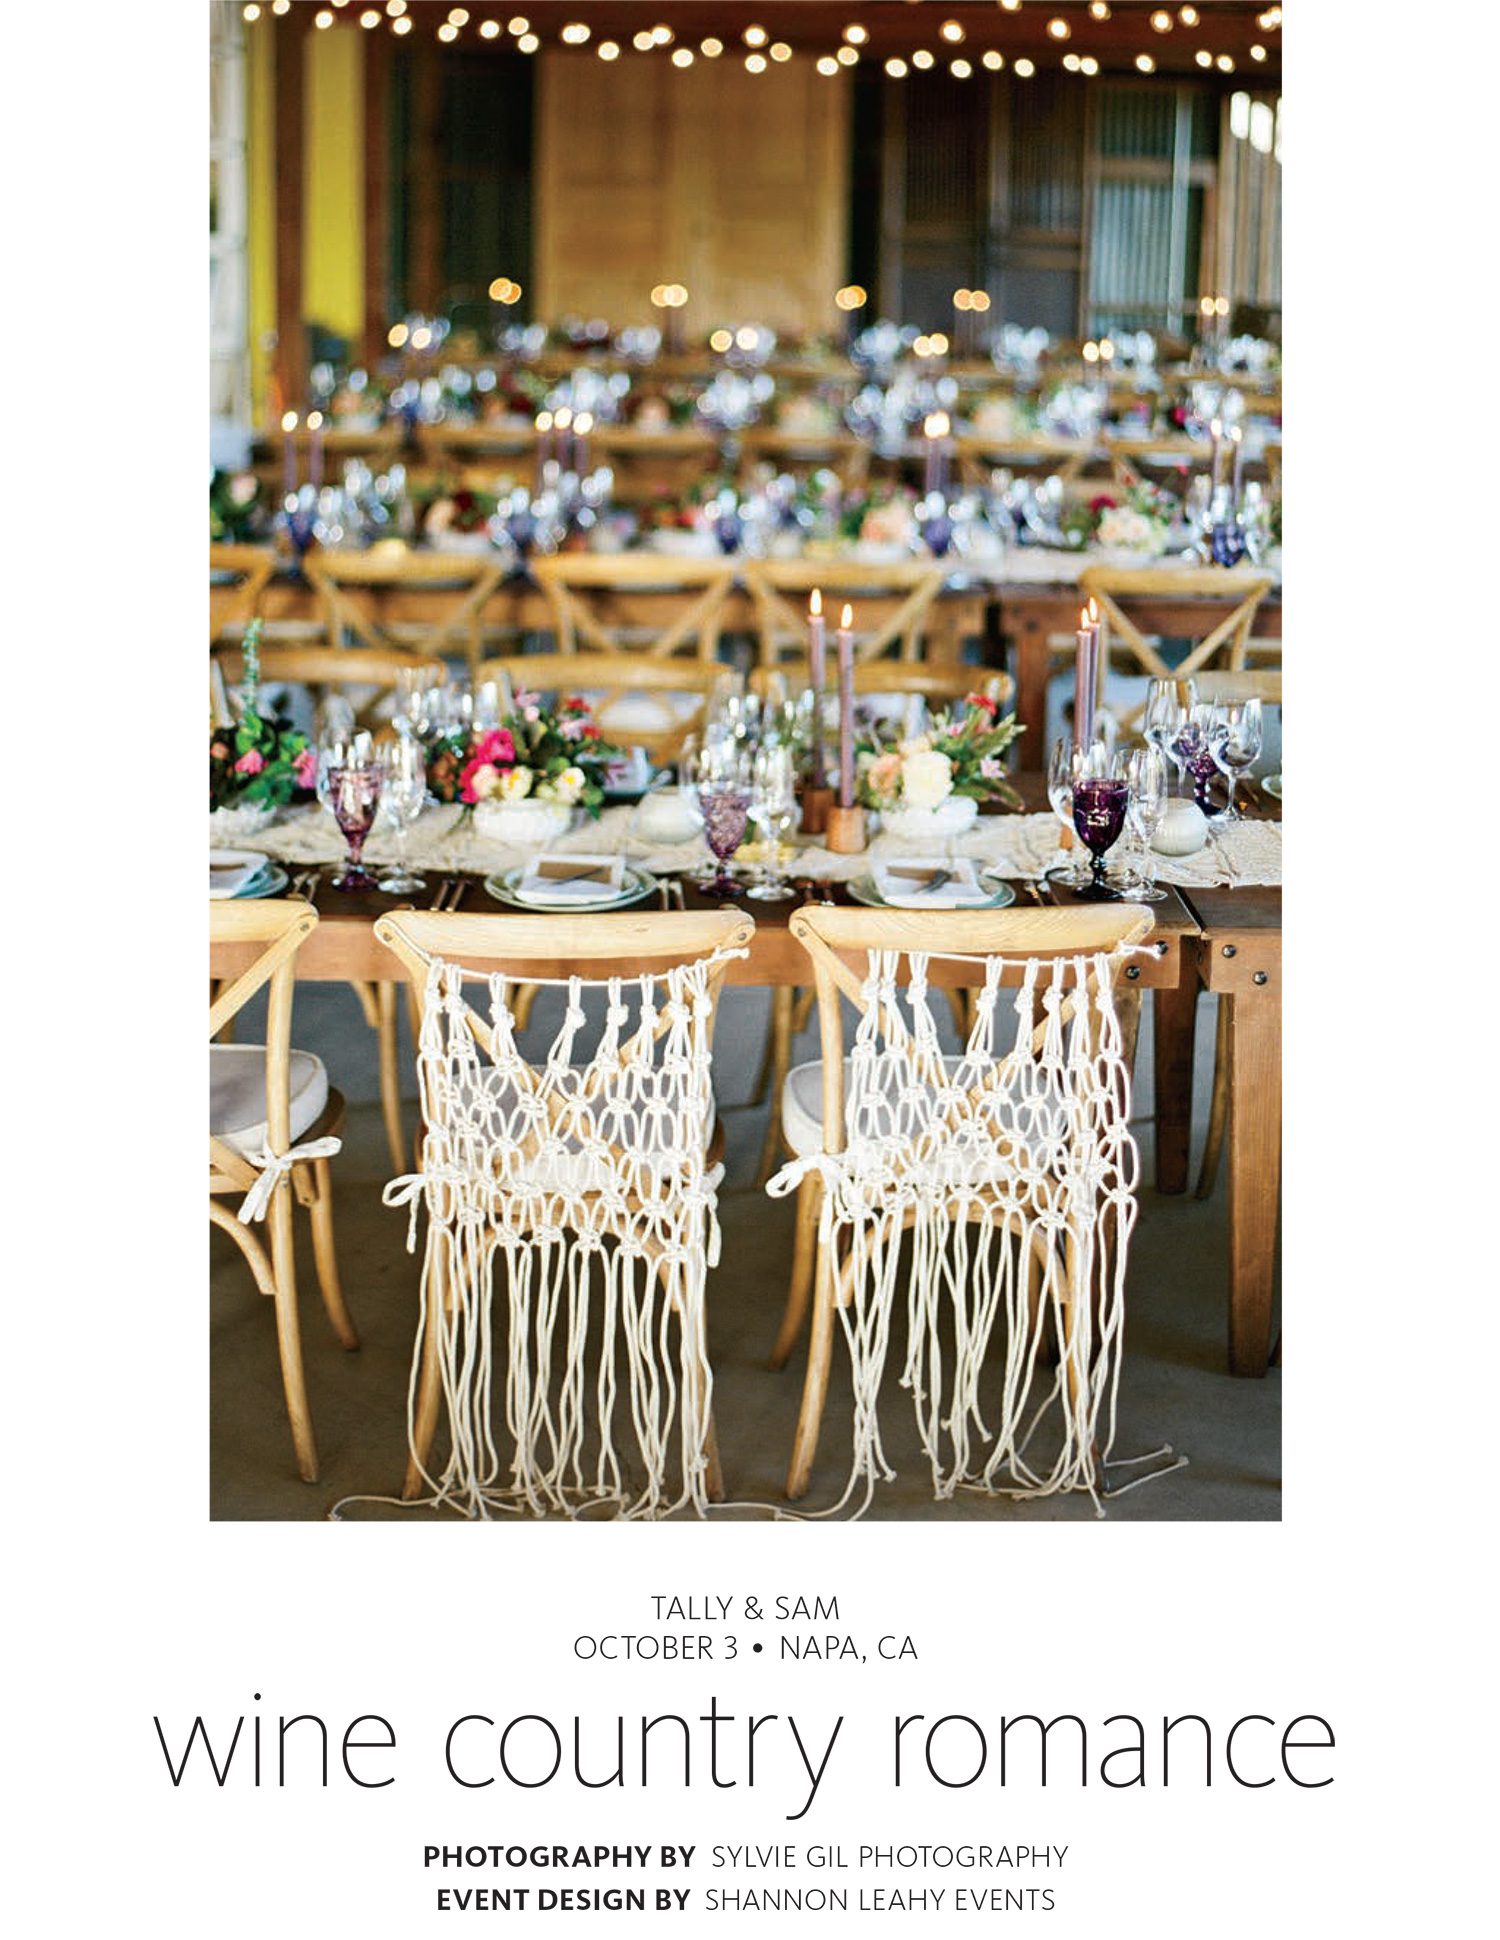 Tally & Sam's spread in The Knot Fall 2016 - wine country romance; Sylvie Gil Photography